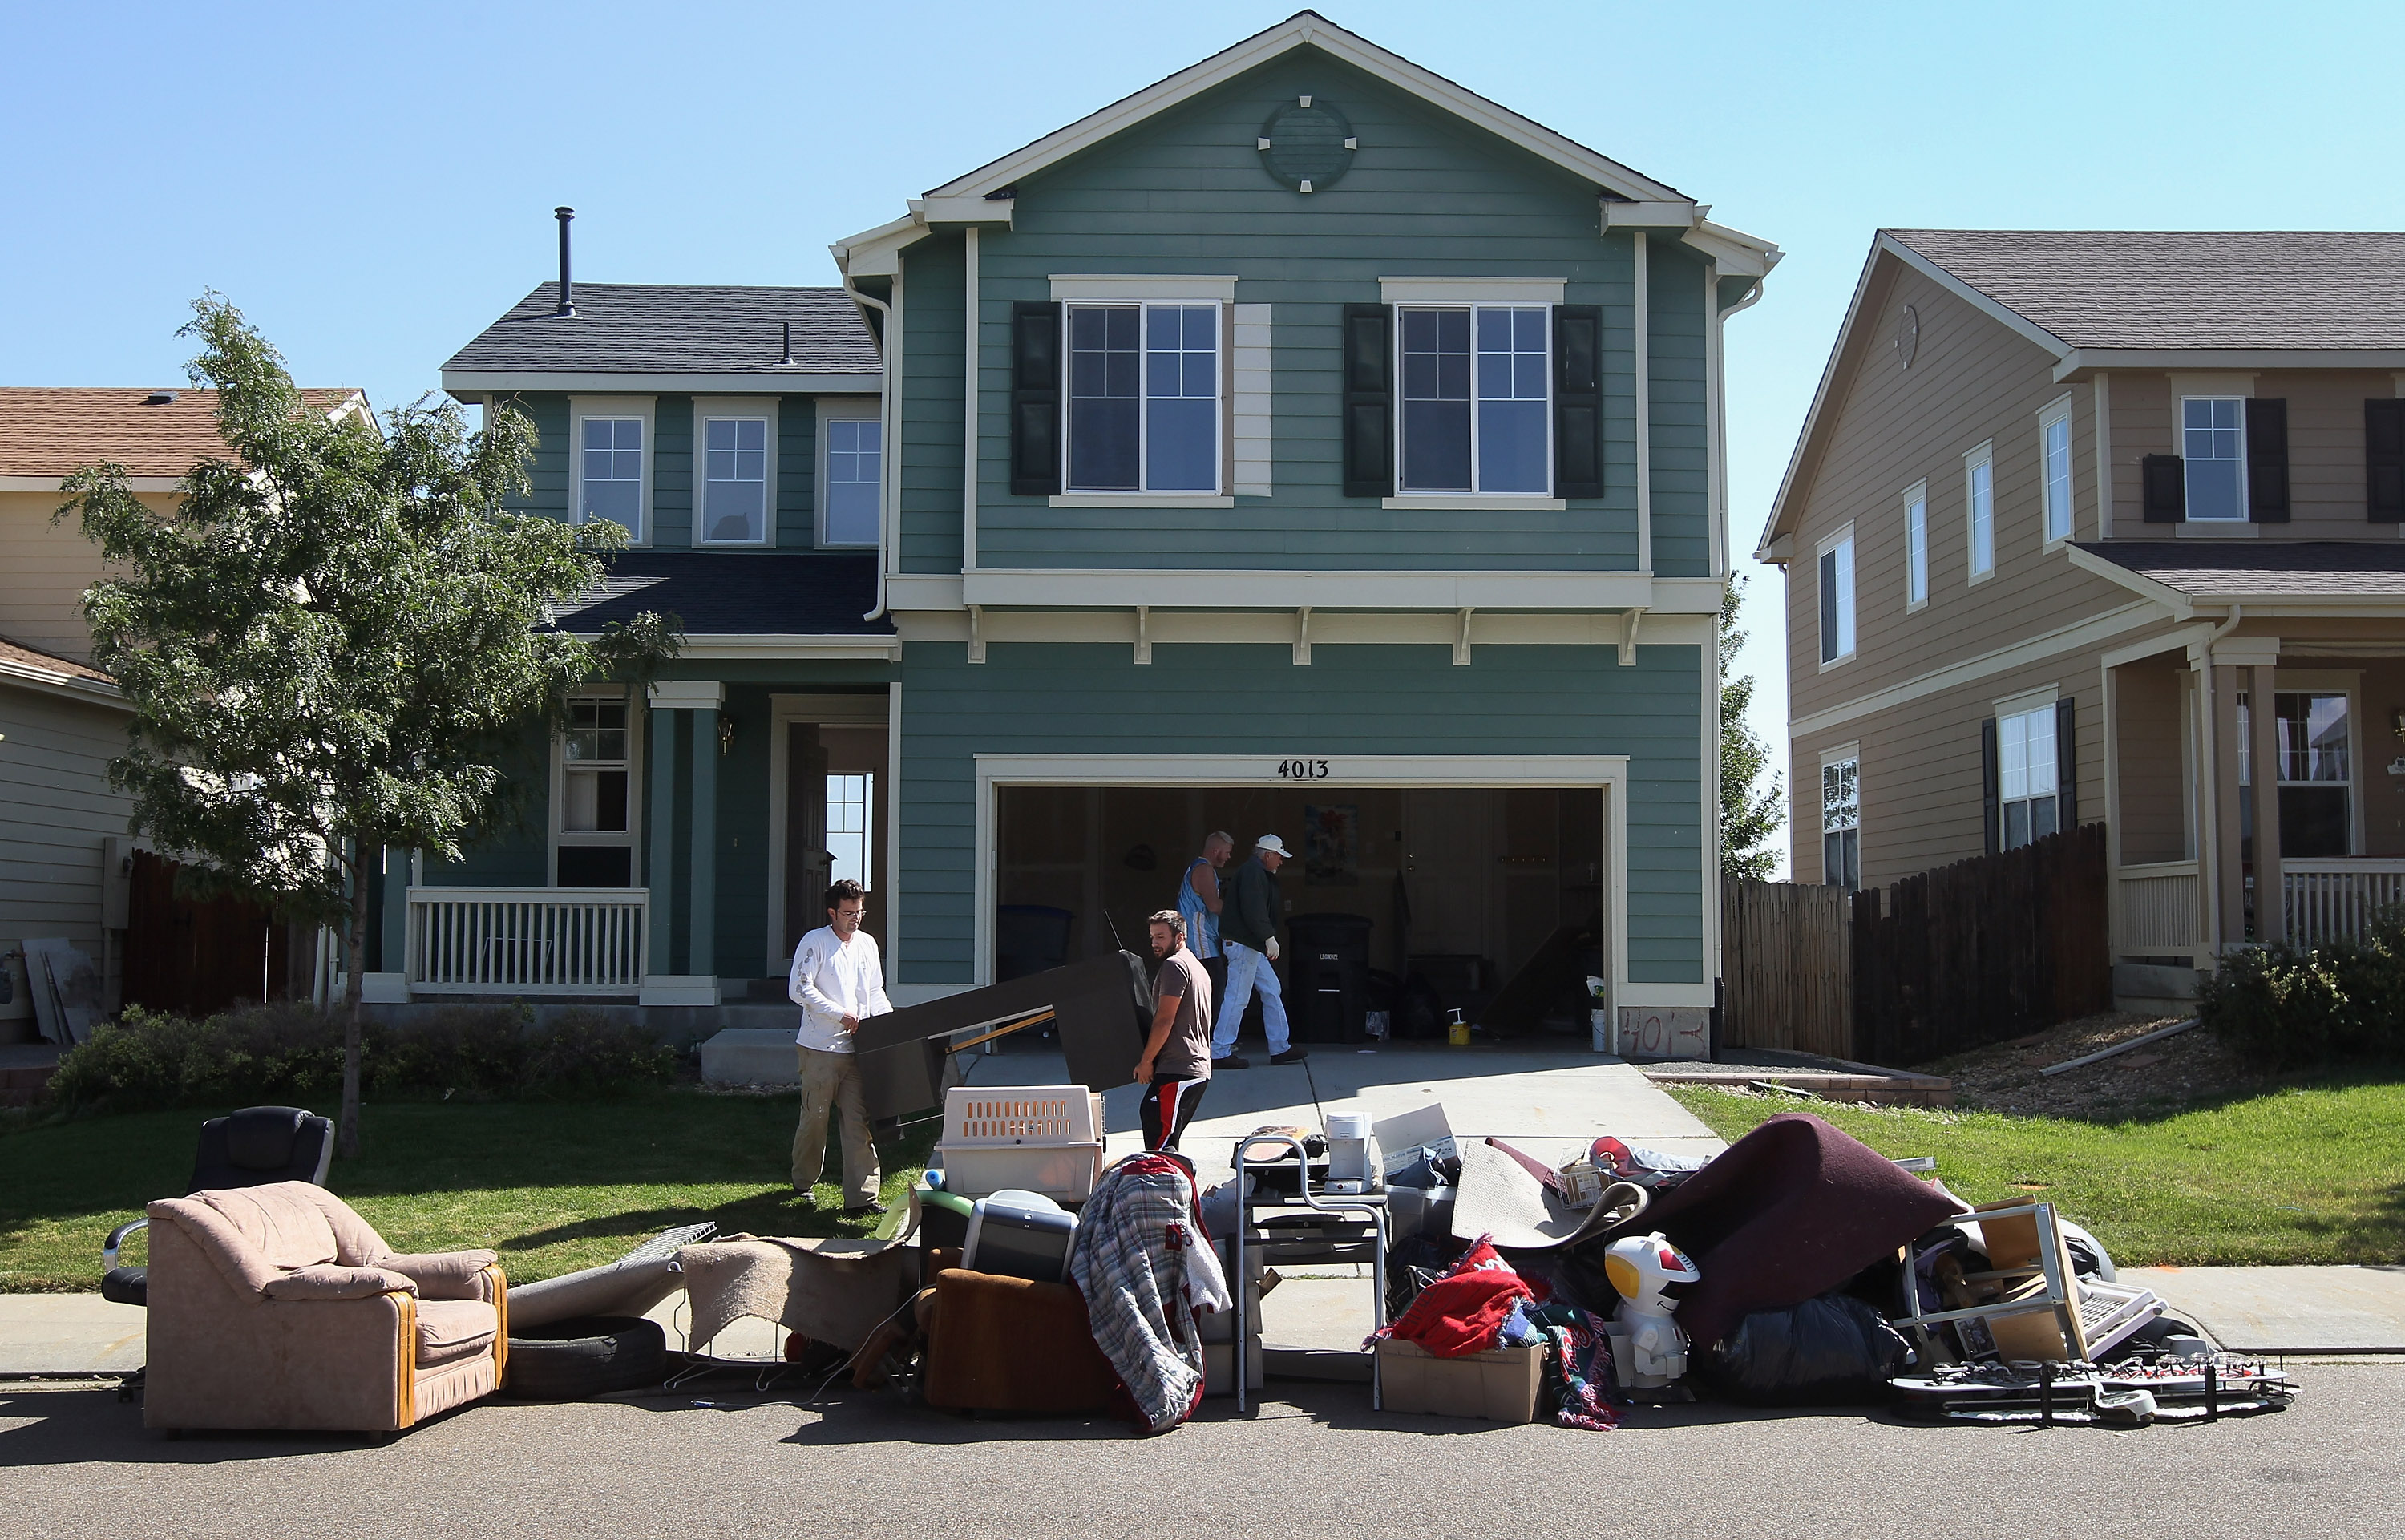 LONGMONT, CO - SEPTEMBER 21: An eviction team removes furniture during a home foreclosure on September 21, 2011 in Longmont, Colorado. The family had already moved out of the four-bedroom house, leaving some furniture to be removed to the street after the sheriff's department served the court order for the eviction. Although sales of previously owned homes have risen nationally, the glut of foreclosures is expected to keep the rise in home values below the rate of inflation for years. (Photo by John Moore/Getty Images)